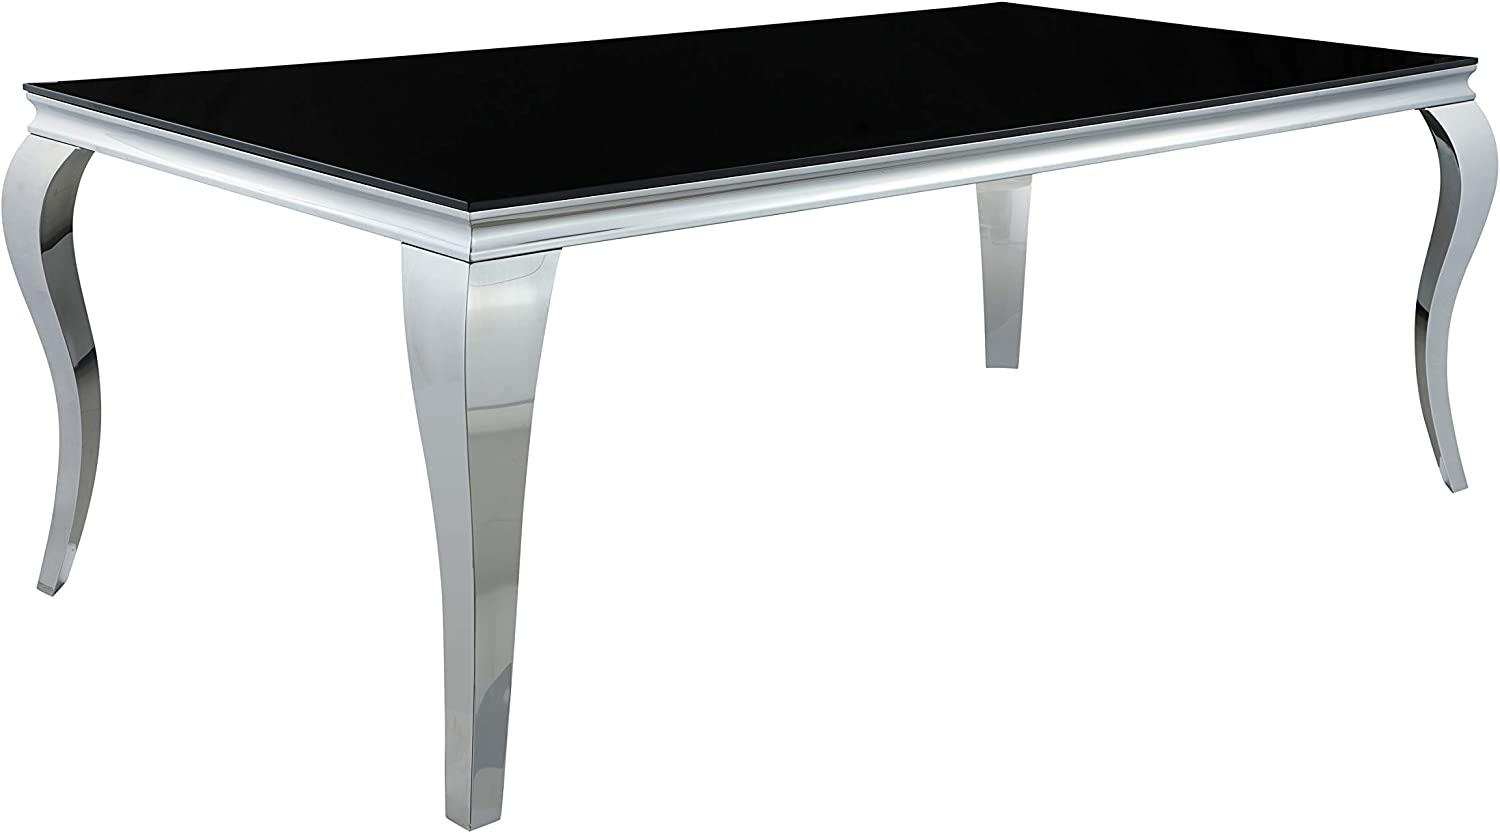 Coaster Home Furnishings Carone Rectangular Glass Top Black and Chrome Dining Table